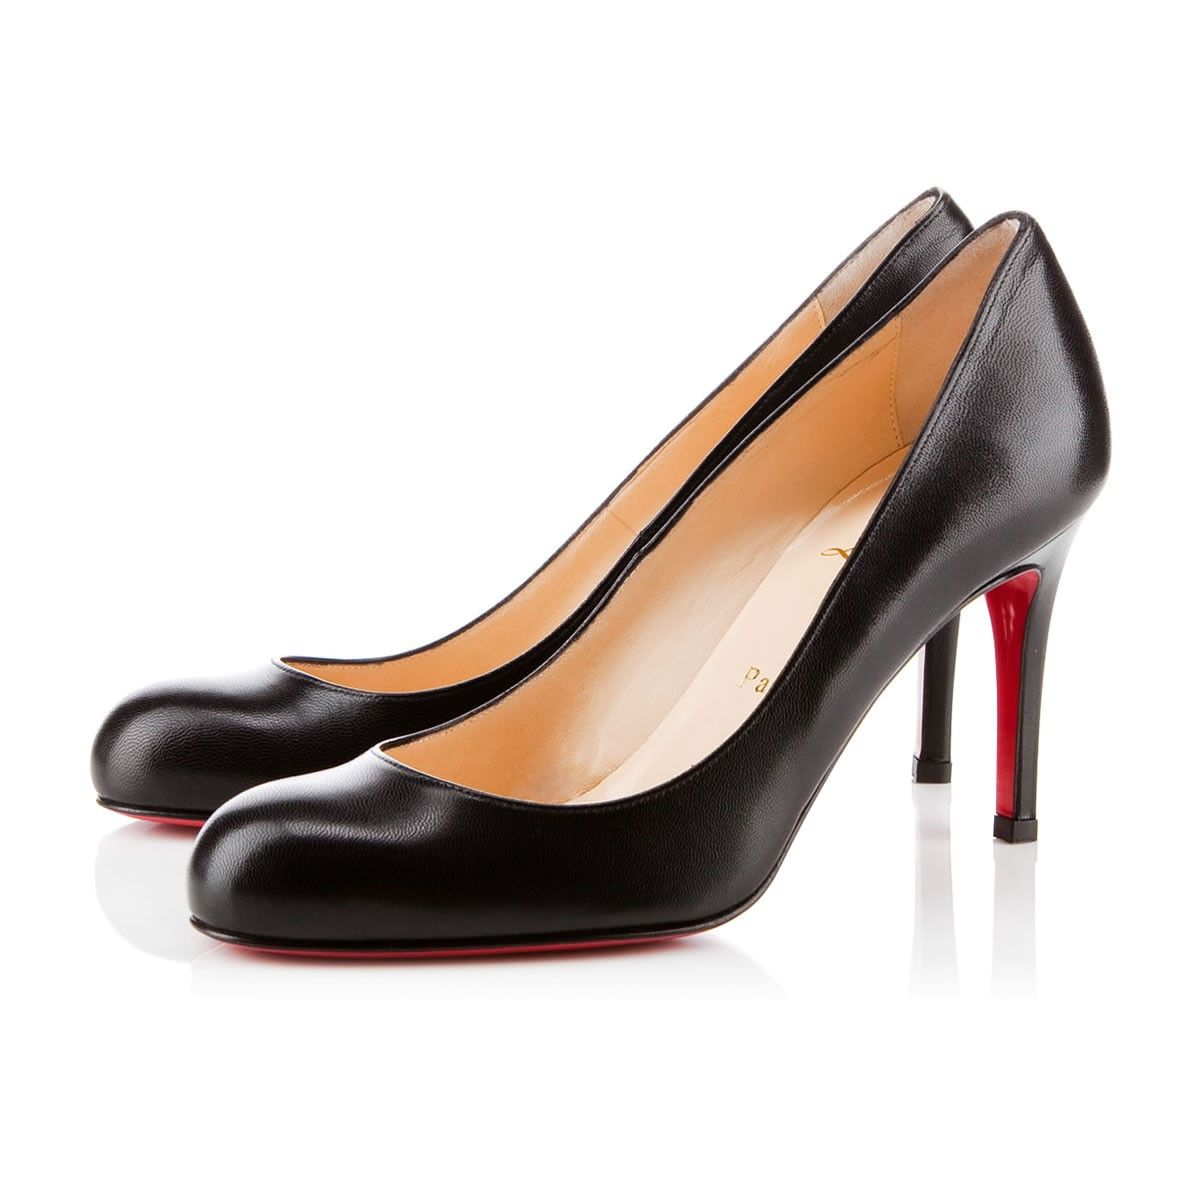 Simple Pump 85 Black Patent Leather - Women Shoes - Christian Louboutin